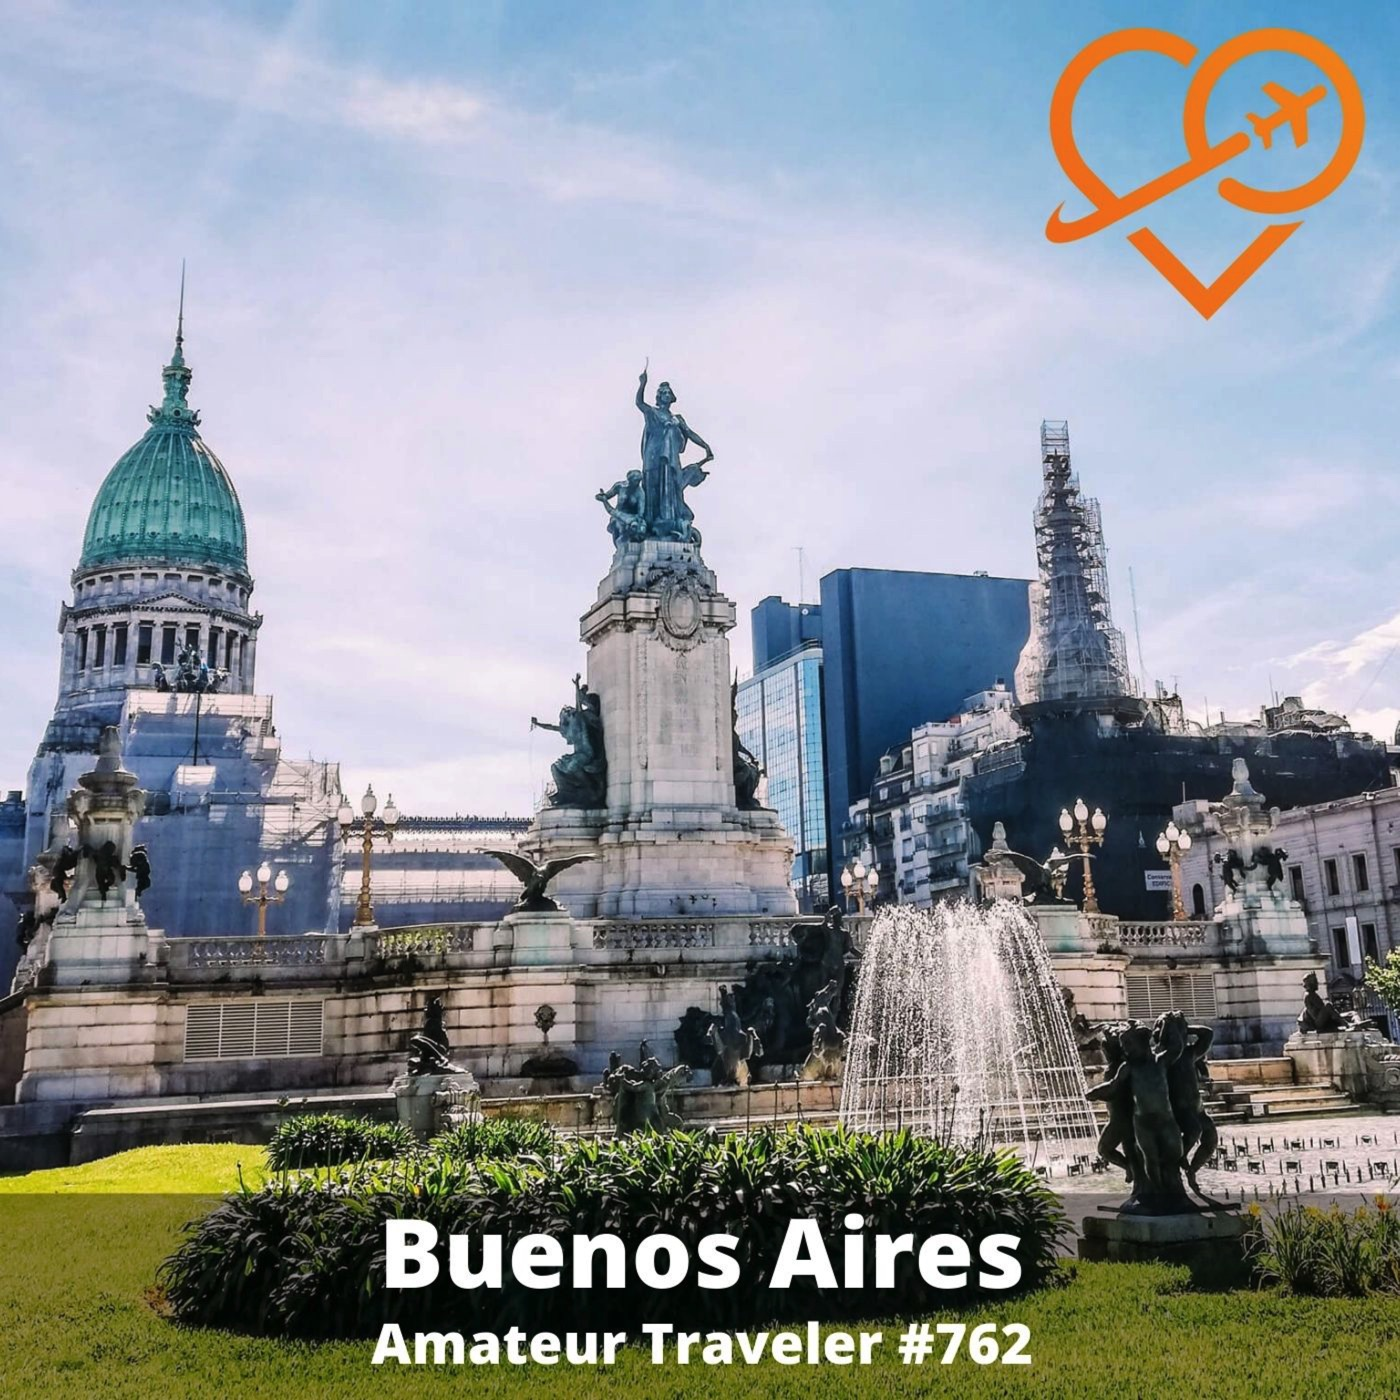 AT#762 - Travel to Buenos Aires, Argentina